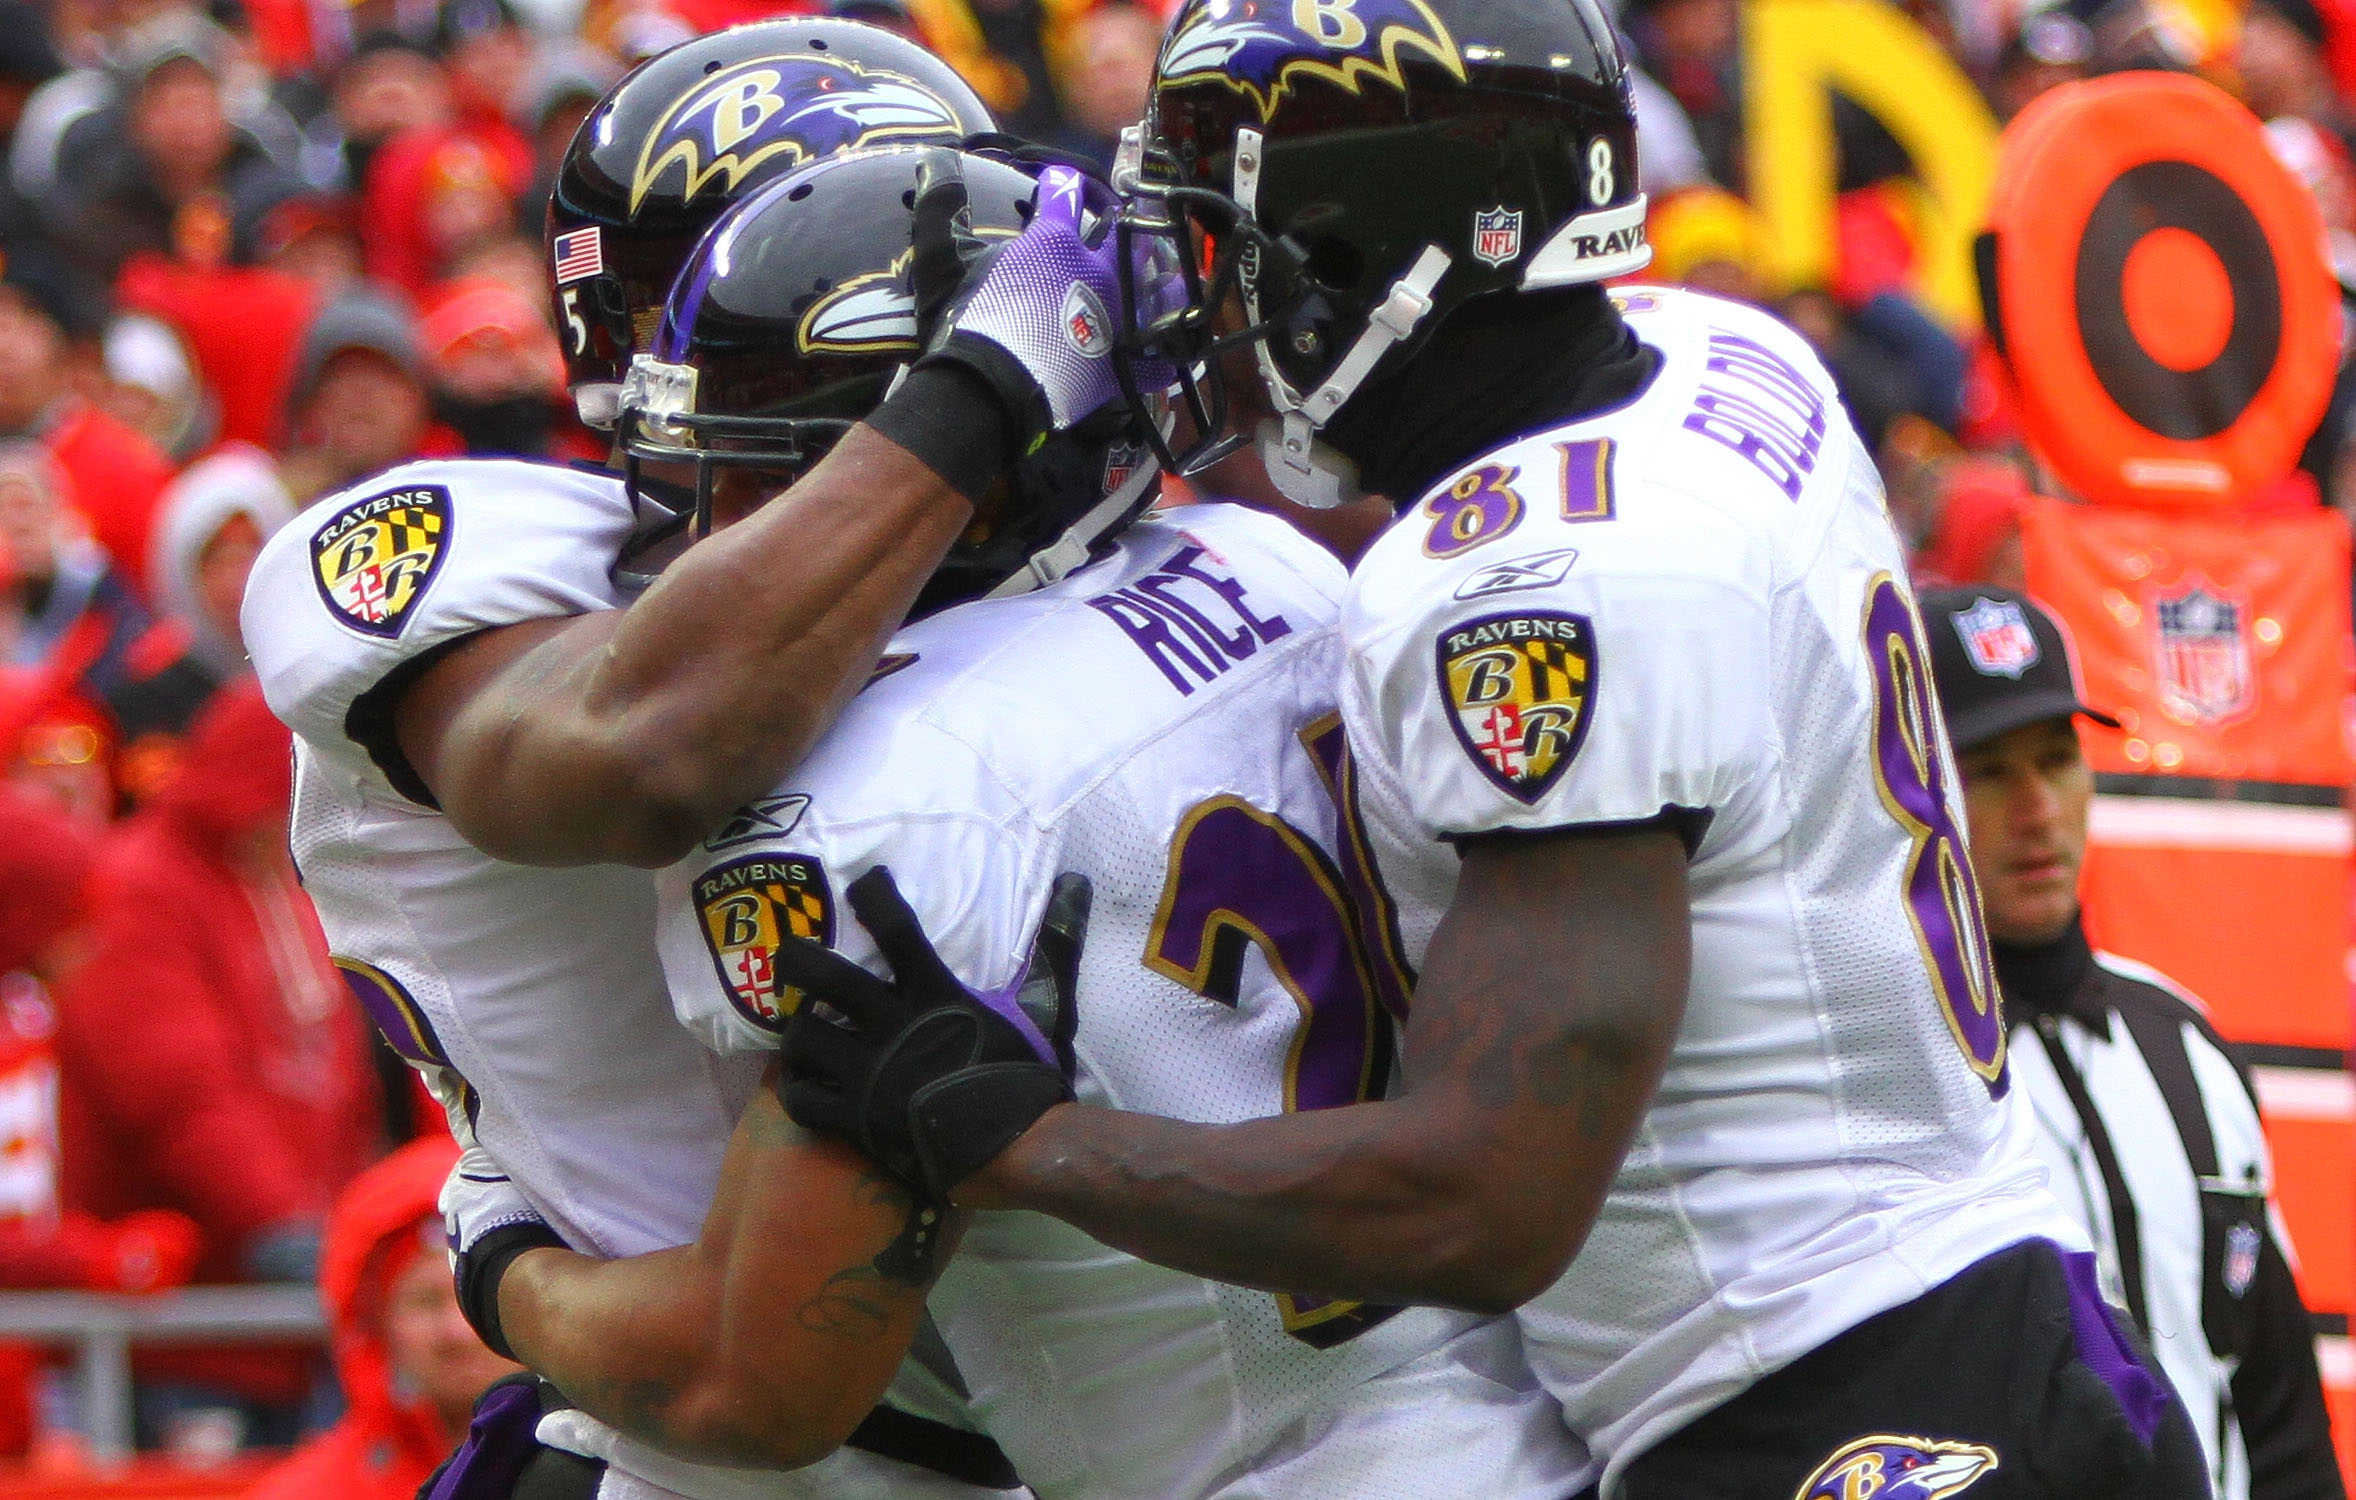 KANSAS CITY, MO - JANUARY 09:  Running back Ray Rice #27 of the Baltimore Ravens celebrates with teammates after scoring a touchdown against the Kansas City Chiefs in the second quarter of their 2011 AFC wild card playoff game at Arrowhead Stadium on Janu